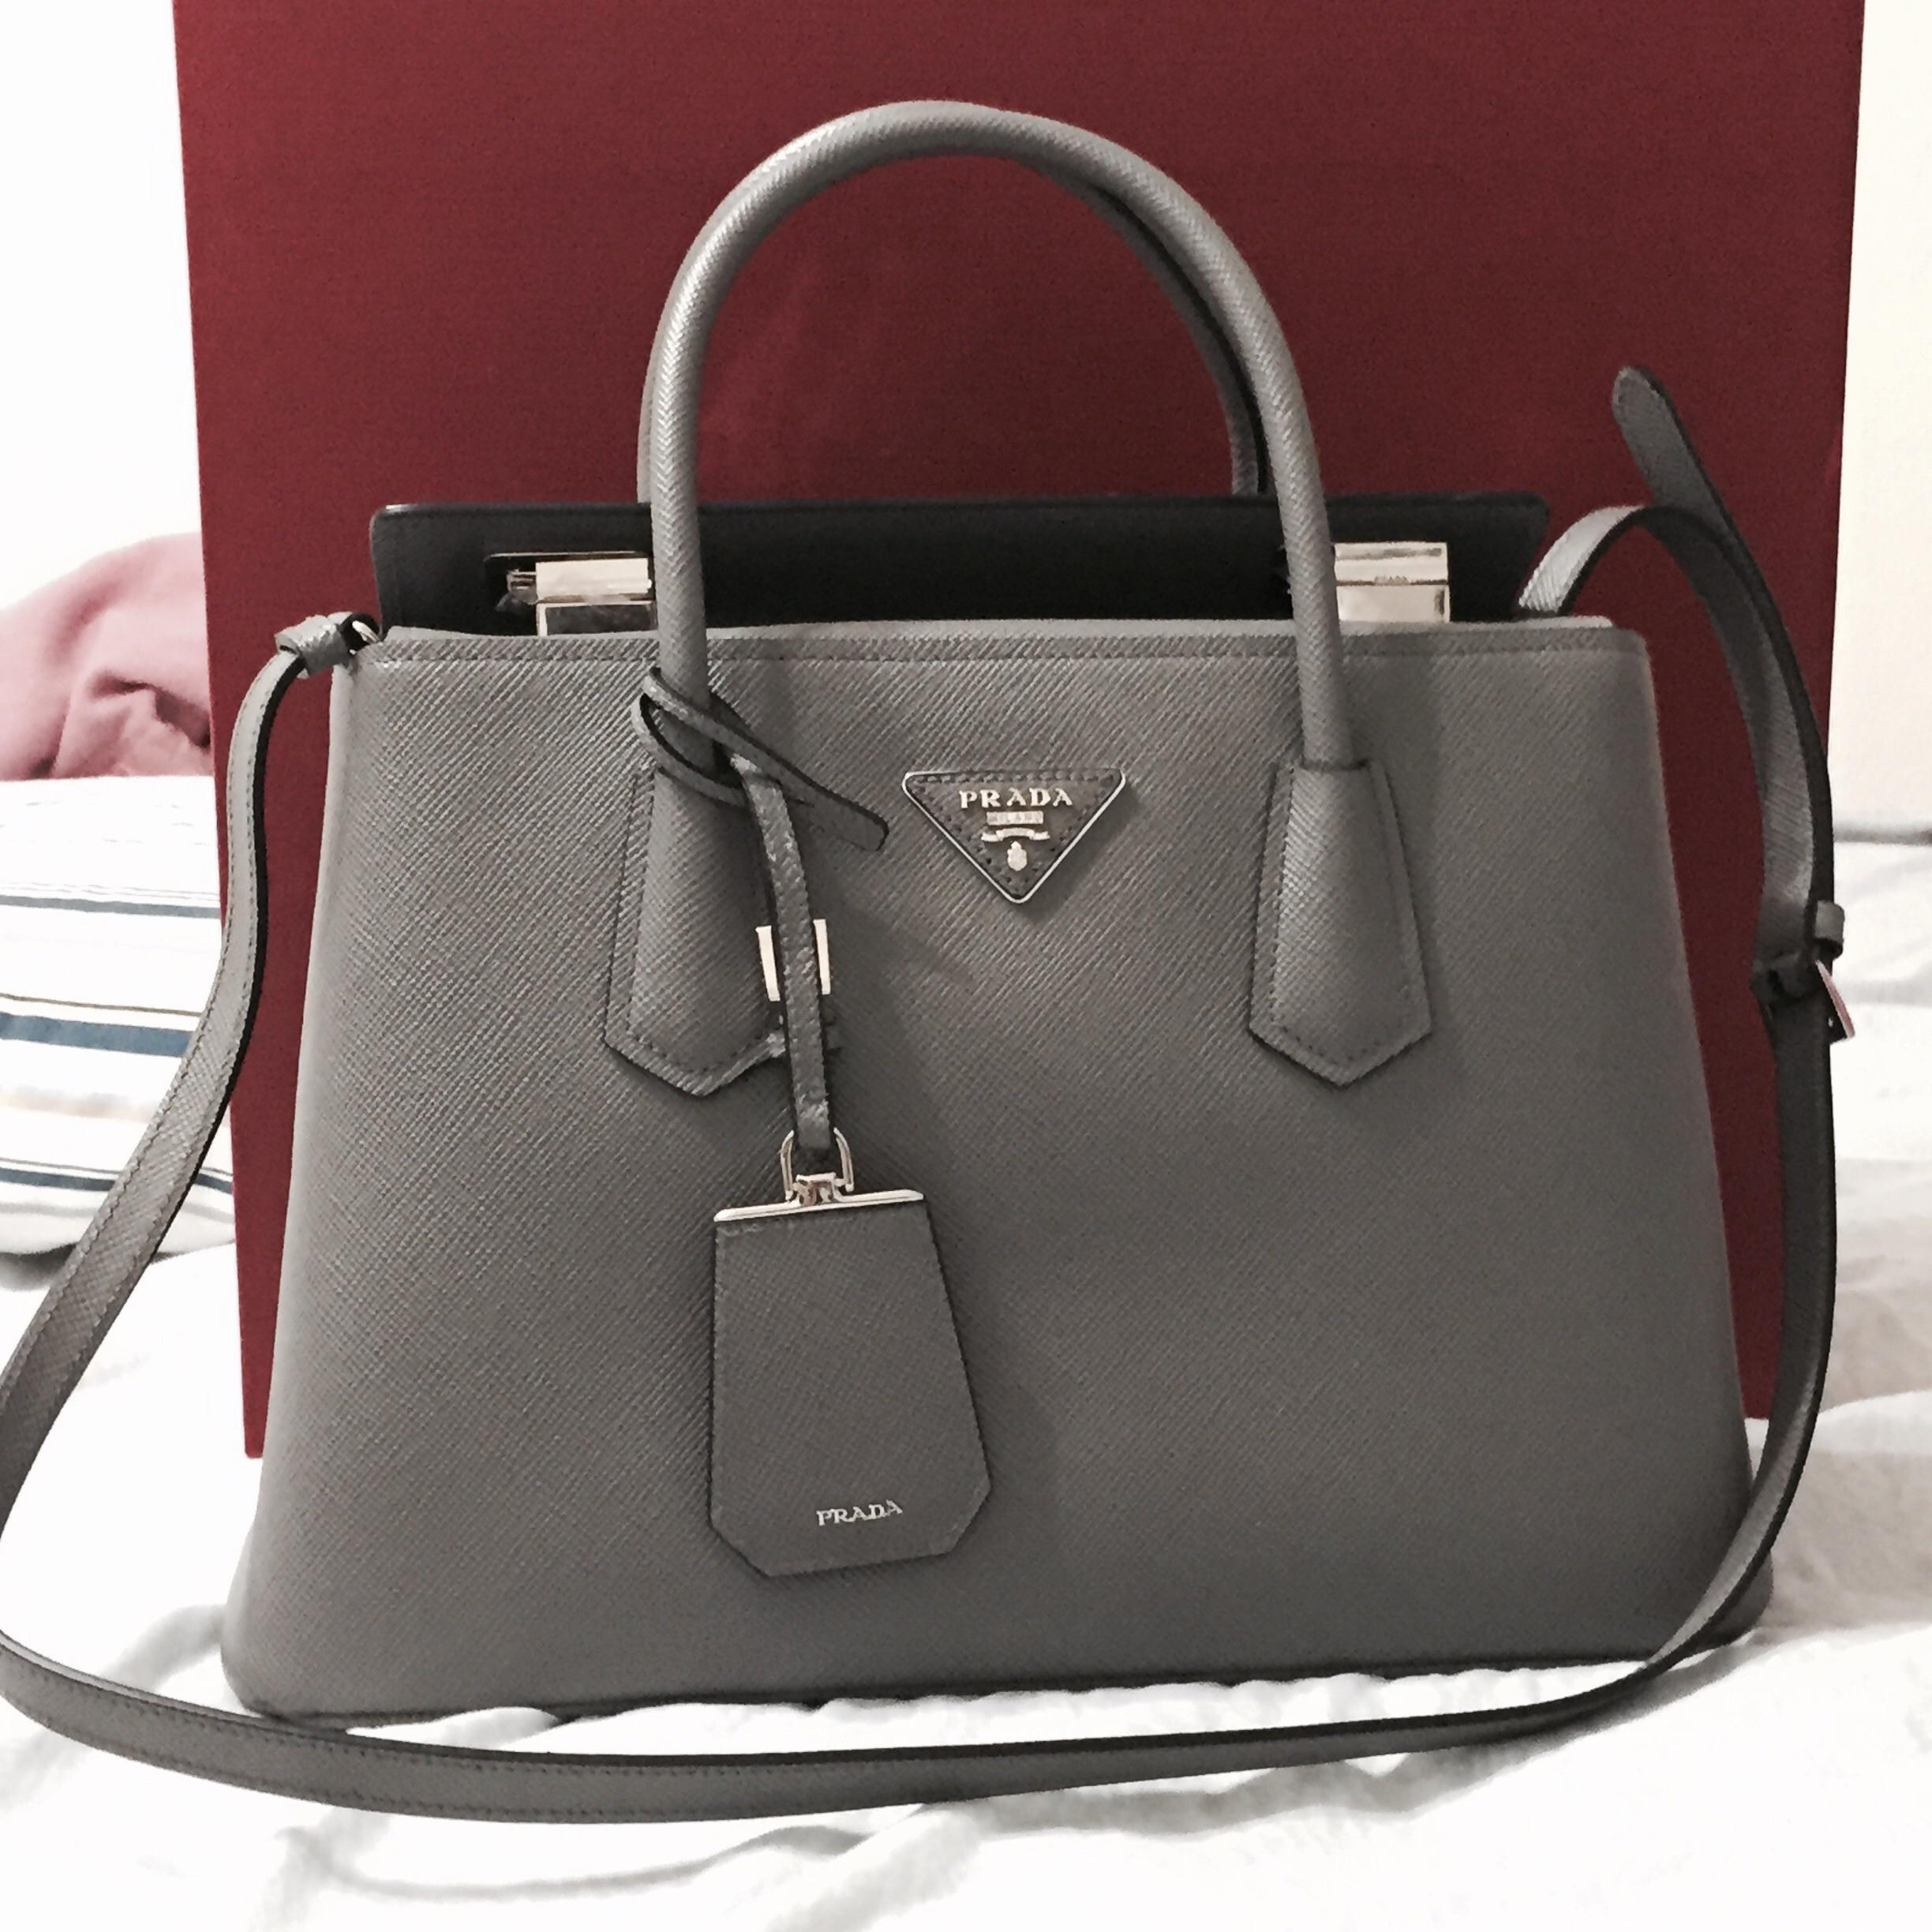 d98eec1c70e8 ... netherlands prada saffiano cuir tote grey. marble leather cross body bag  23093 f5d35